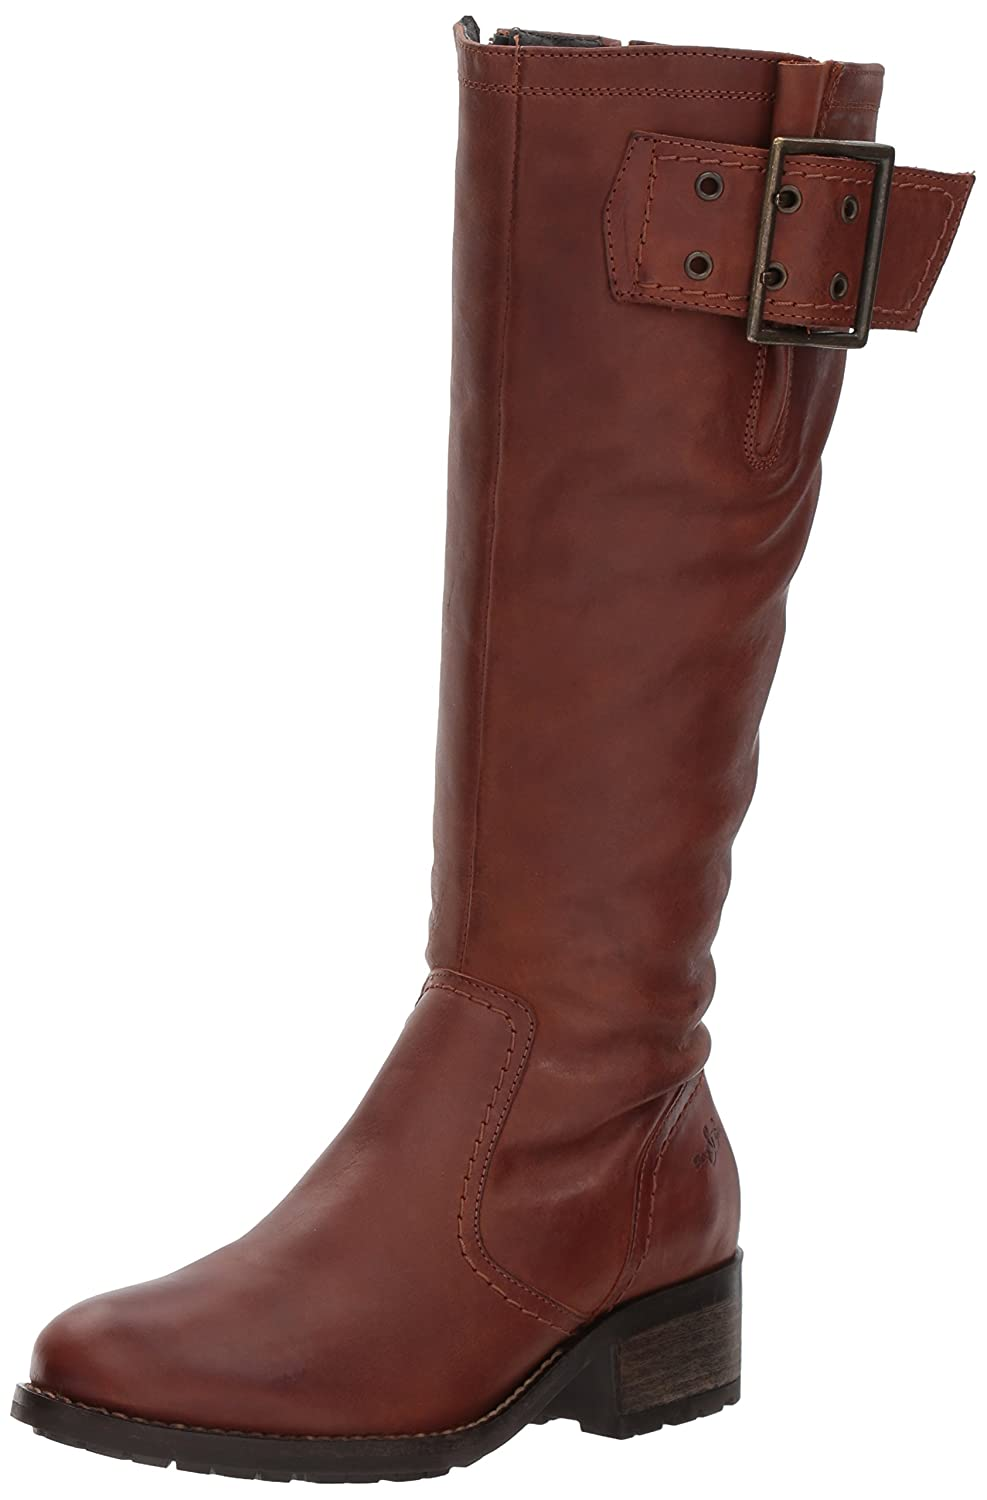 Bos. & Co. Women's Lawson Knee High Boot B06WWJS8DY 40 M EU (9-9.5 US)|Cognac Varse Leather